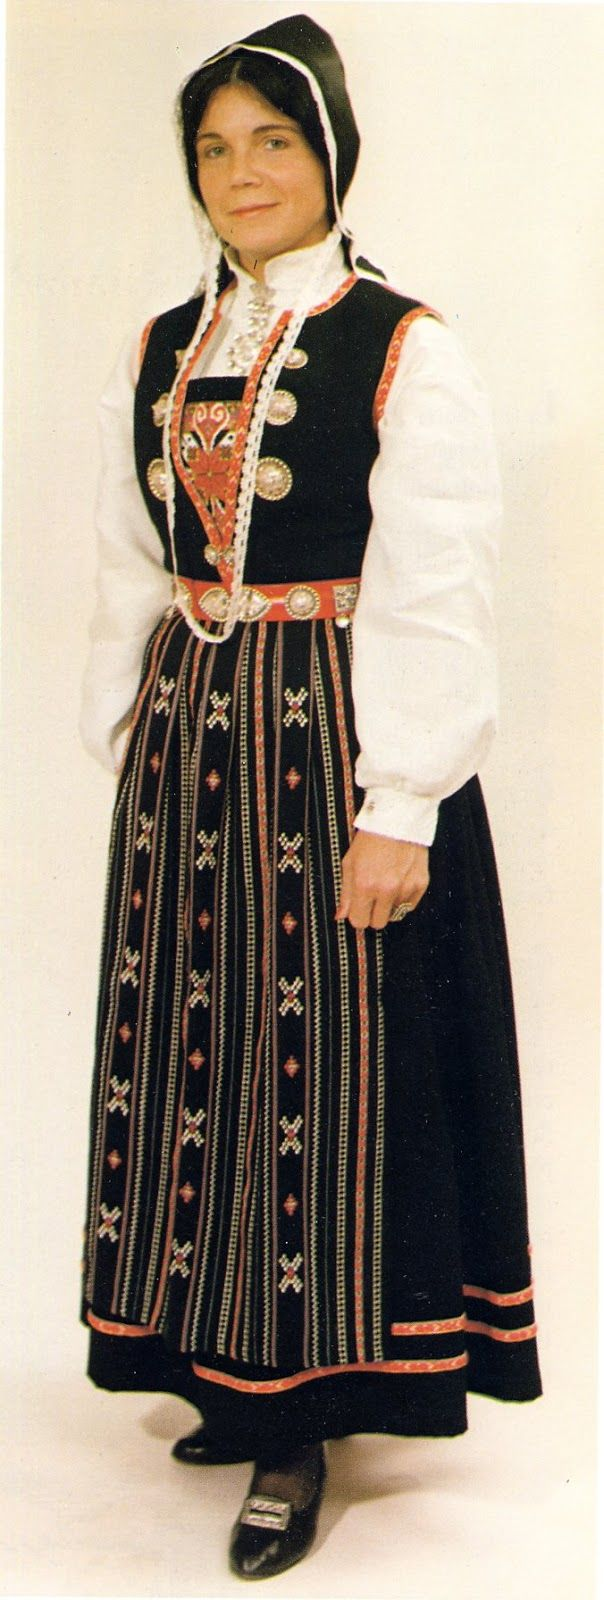 Hello all, Today I will cover the last province of Norway, Hordaland. This is one of the great centers of Norwegian folk costume, hav... Masfjorden